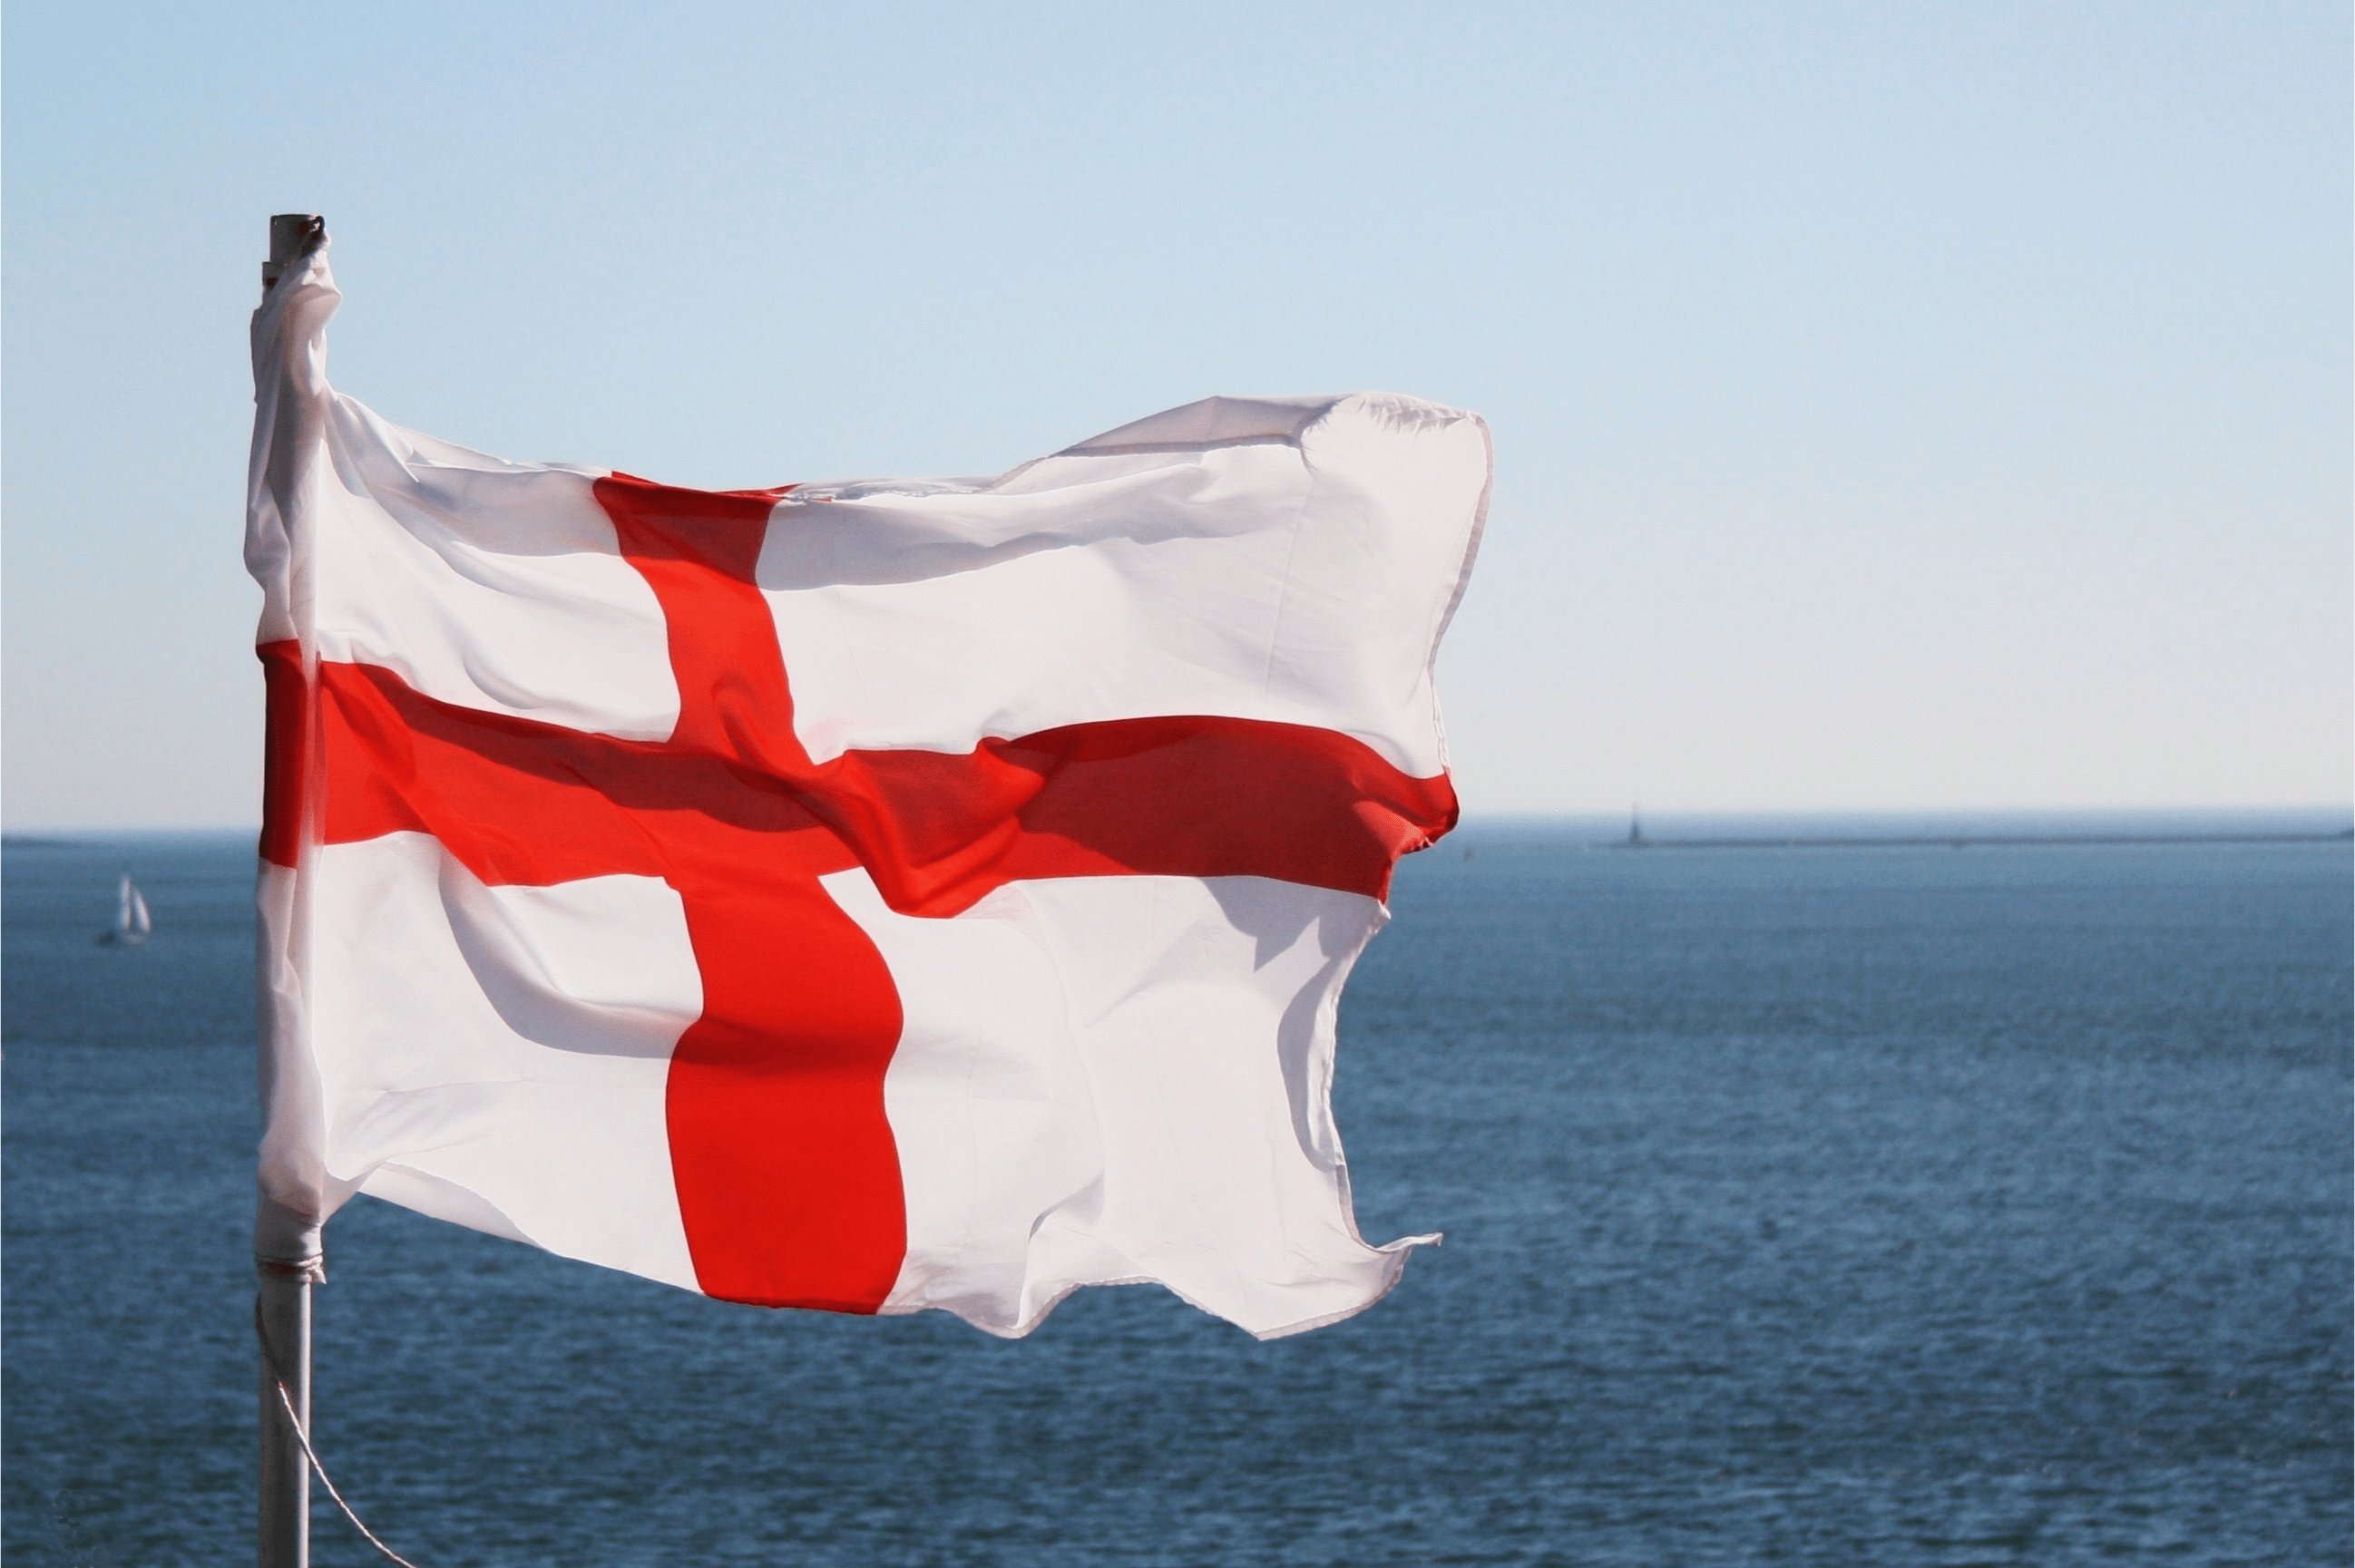 What it means to be English is changing – St George's Day is the perfect opportunity to celebrate this